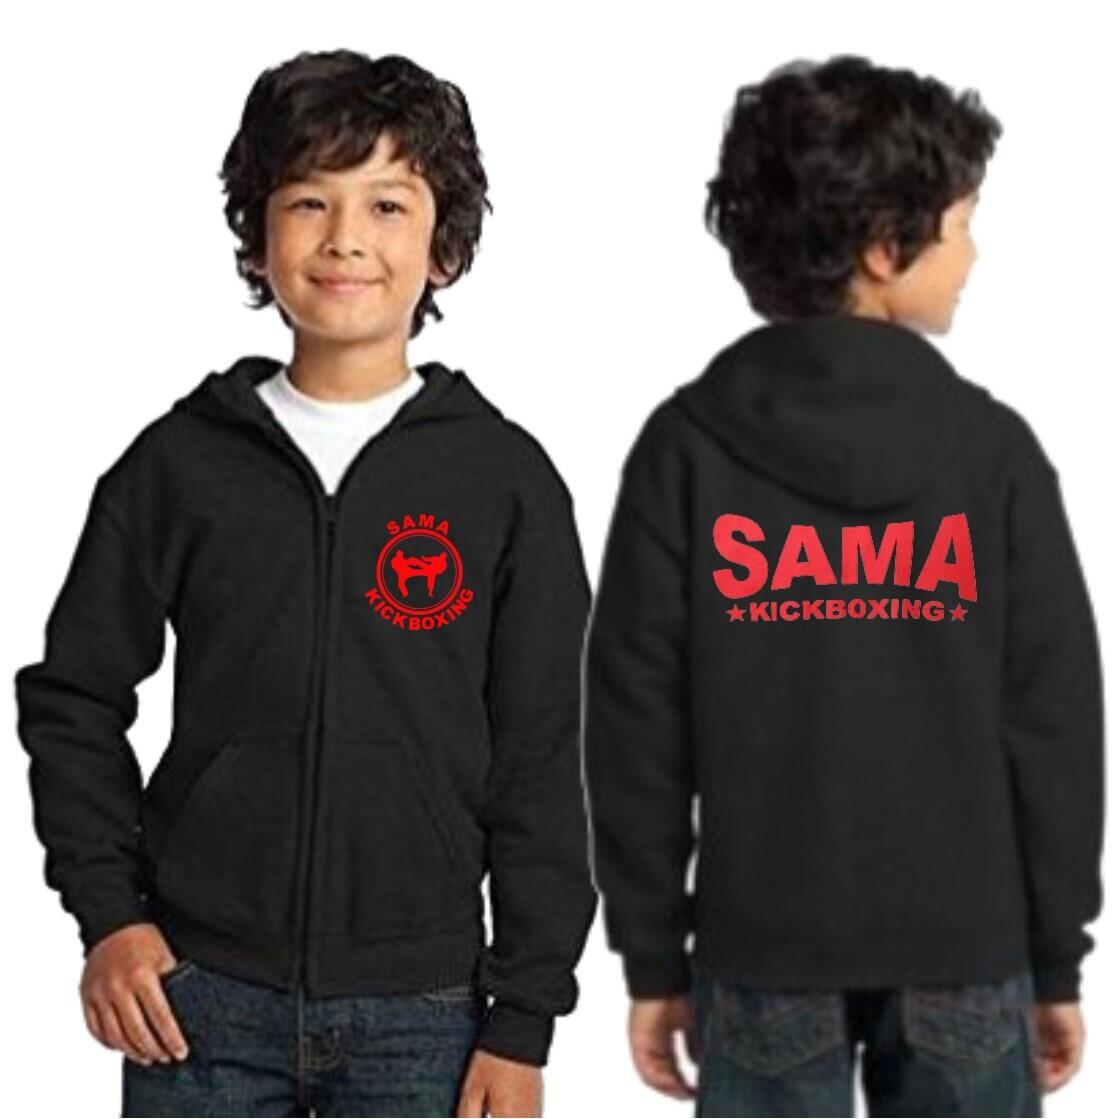 SAMA Kids Kickboxing Zip Up Hoody